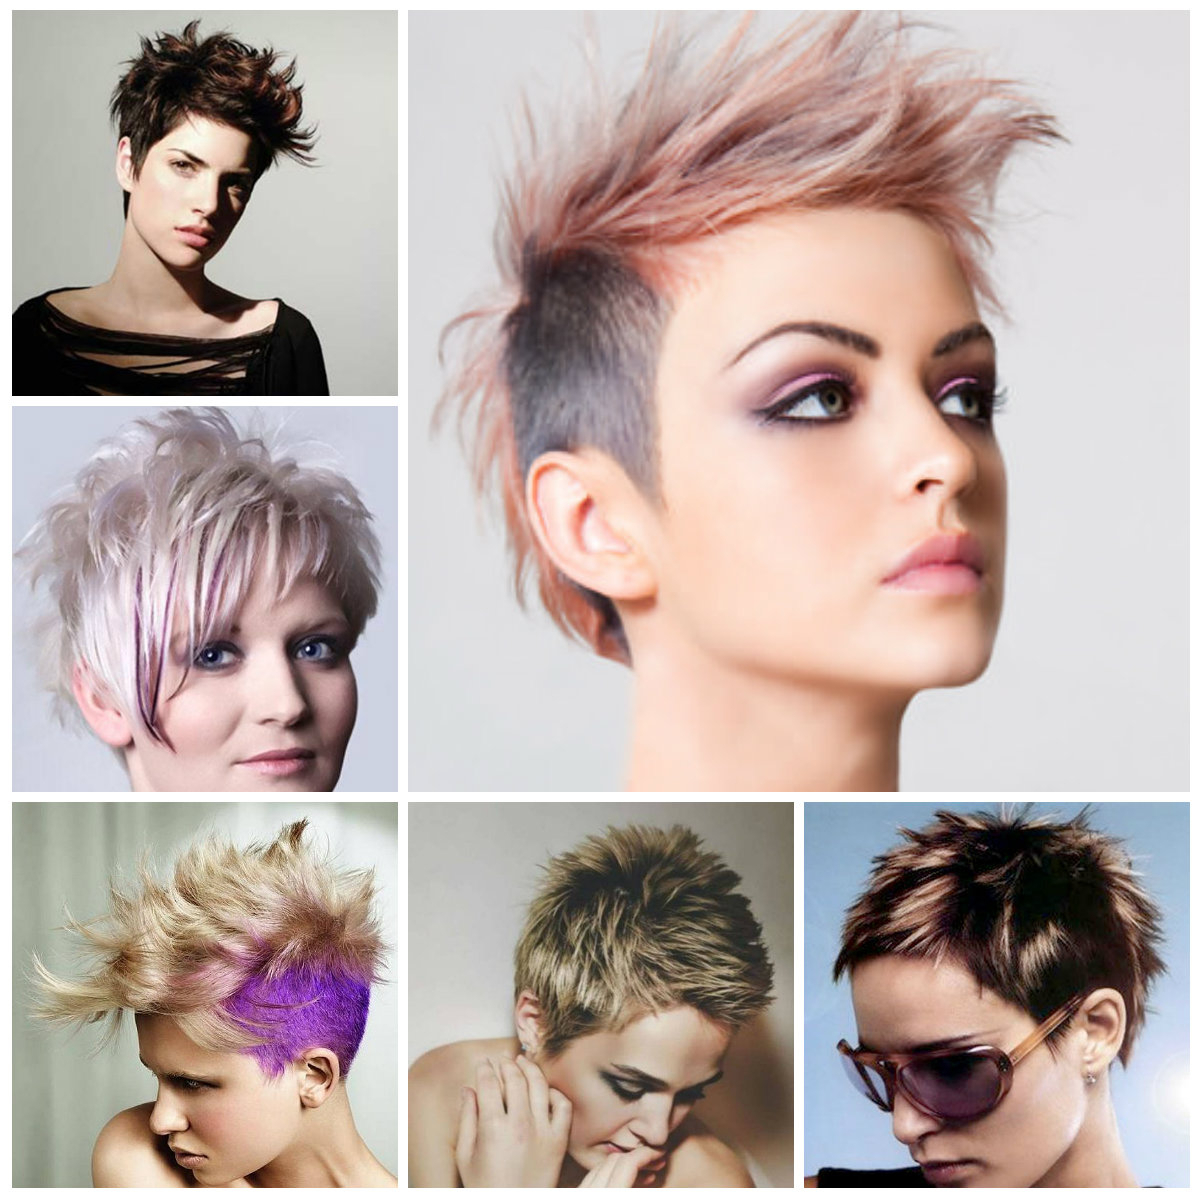 2019 Trendy Short Spiky Hairstyles For Women | Hairstyles For Women Intended For Short Trendy Hairstyles For Women (View 5 of 25)